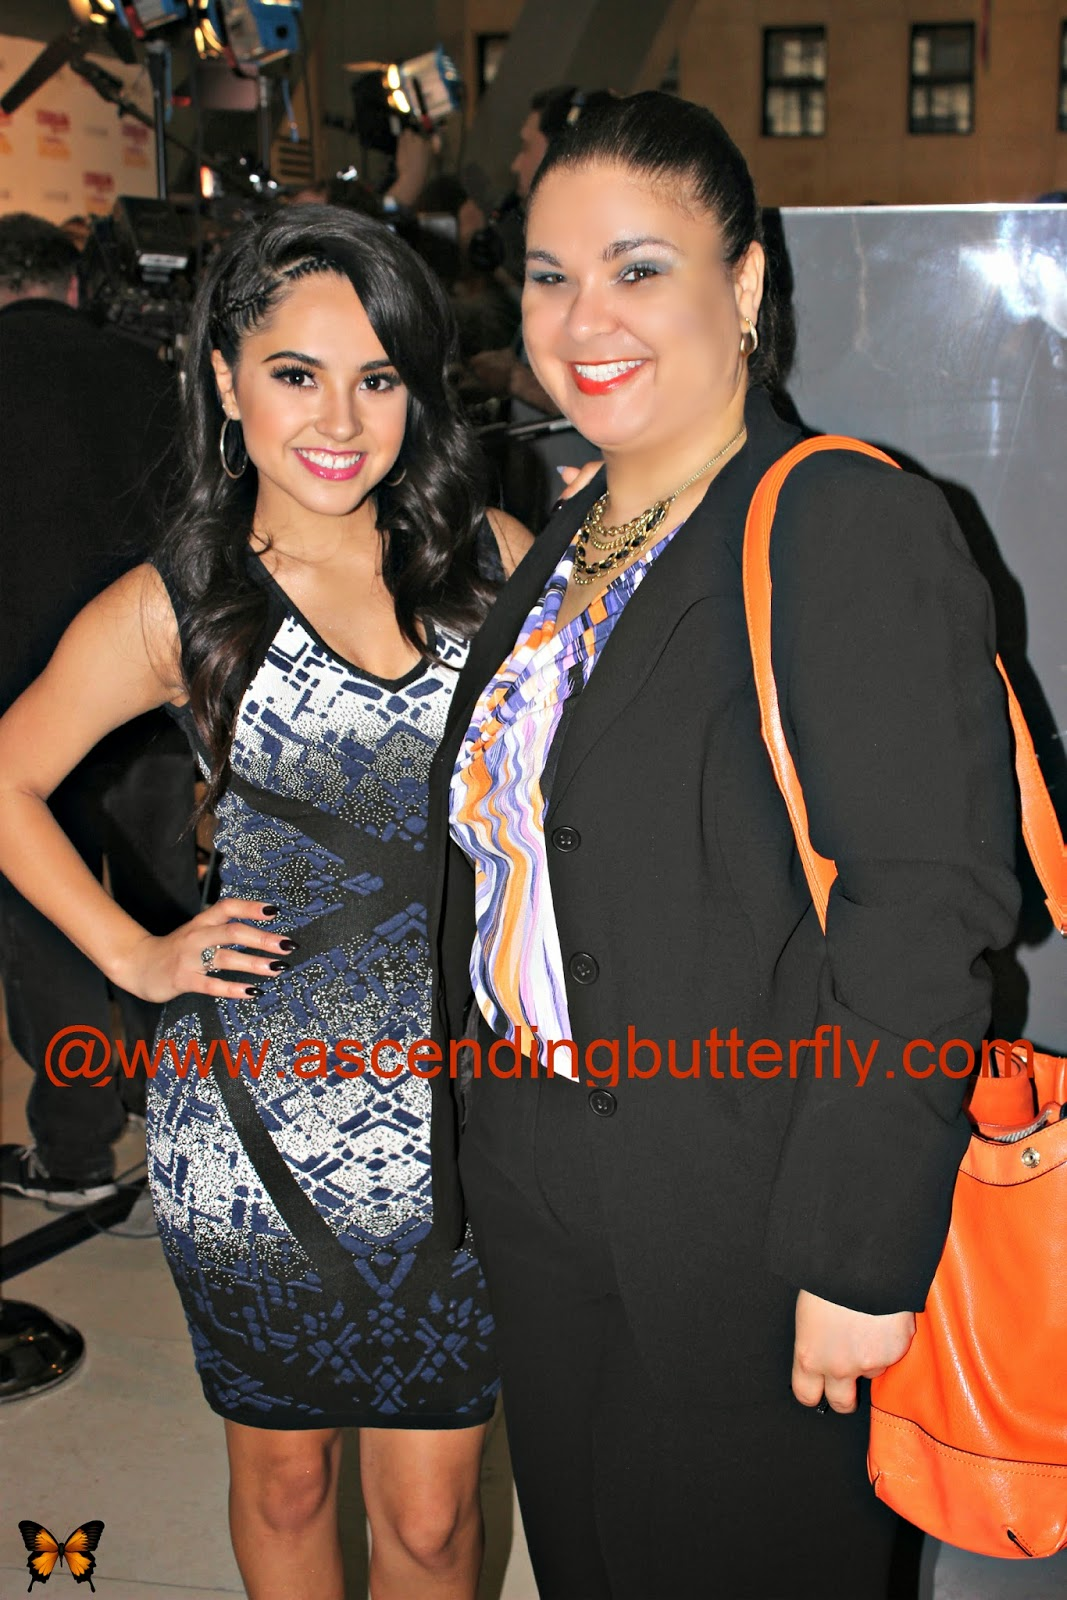 Blogger Ascending Butterfly meets singer Becky G at Cosmopolitan for Latinas Fun Fearless Awards 2014 in New York City